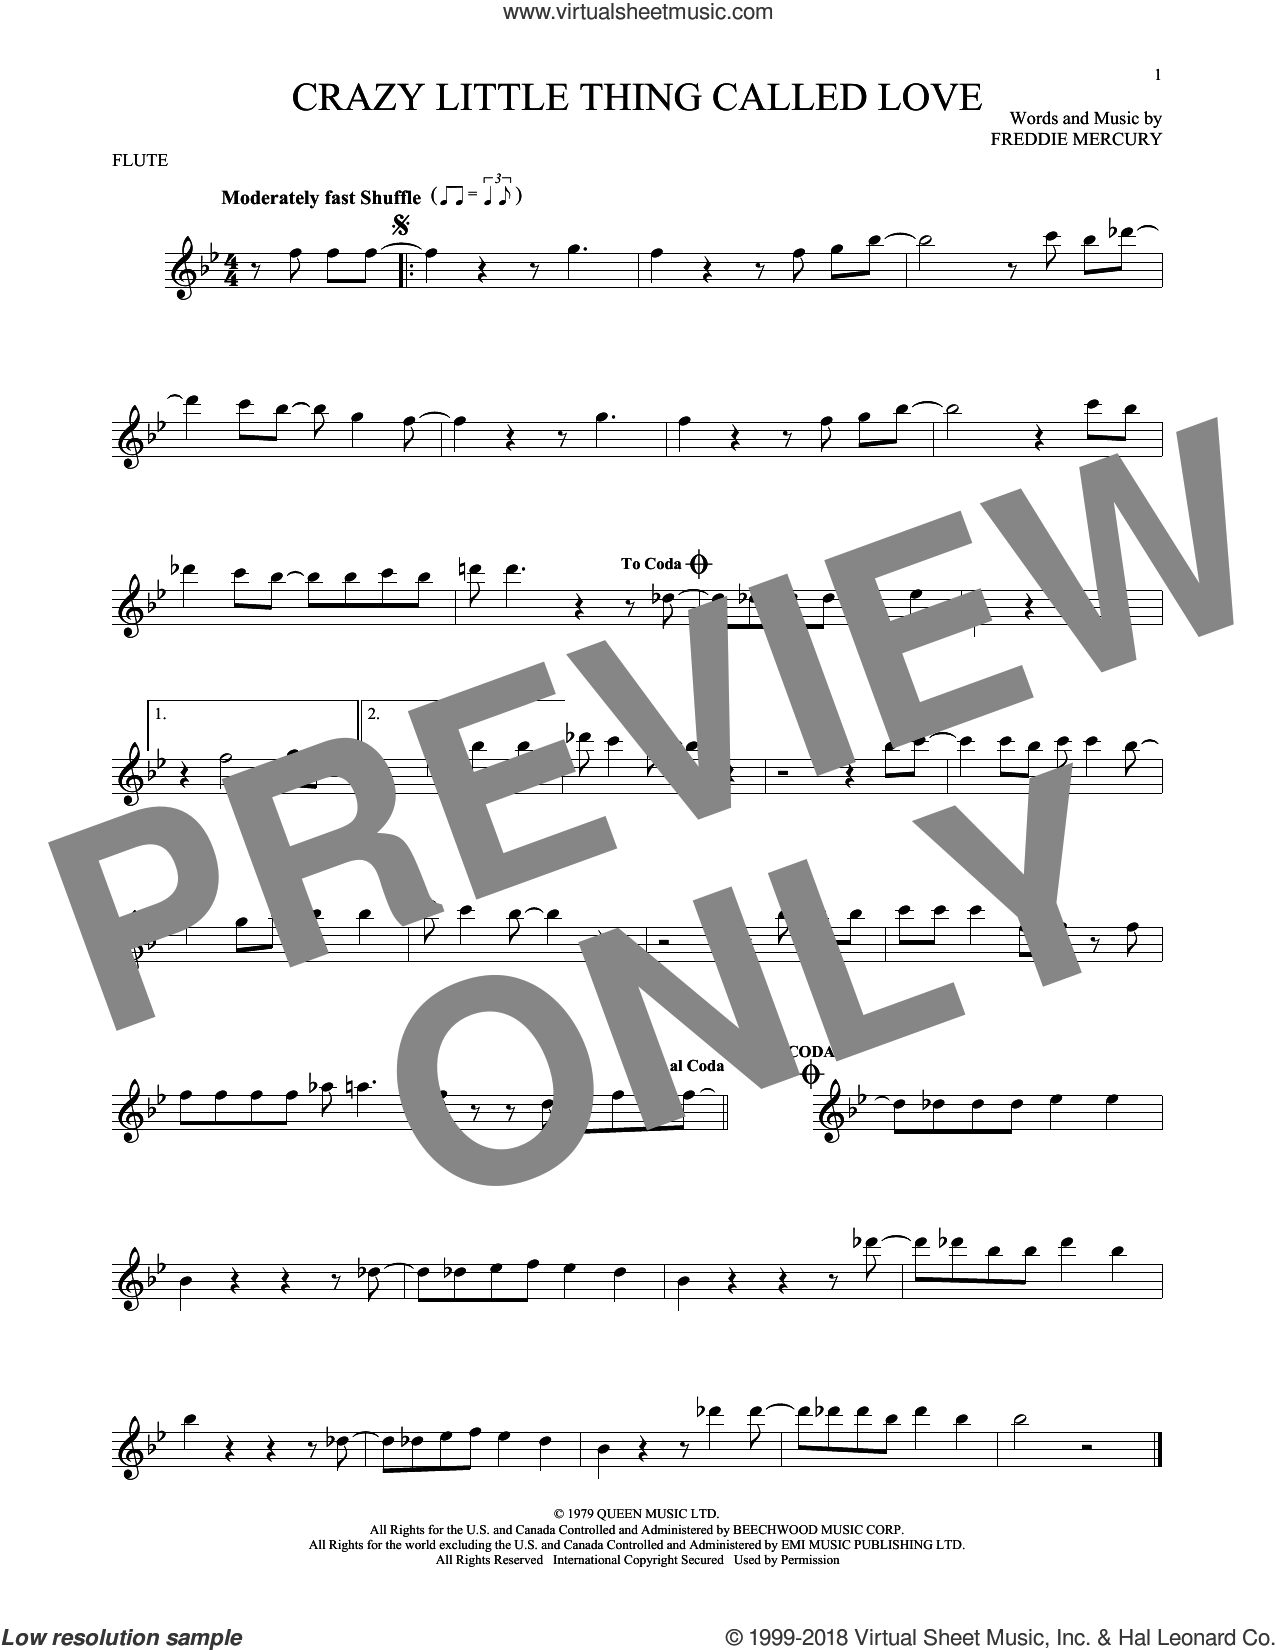 Crazy Little Thing Called Love sheet music for flute solo by Freddie Mercury, Dwight Yoakam and Queen. Score Image Preview.